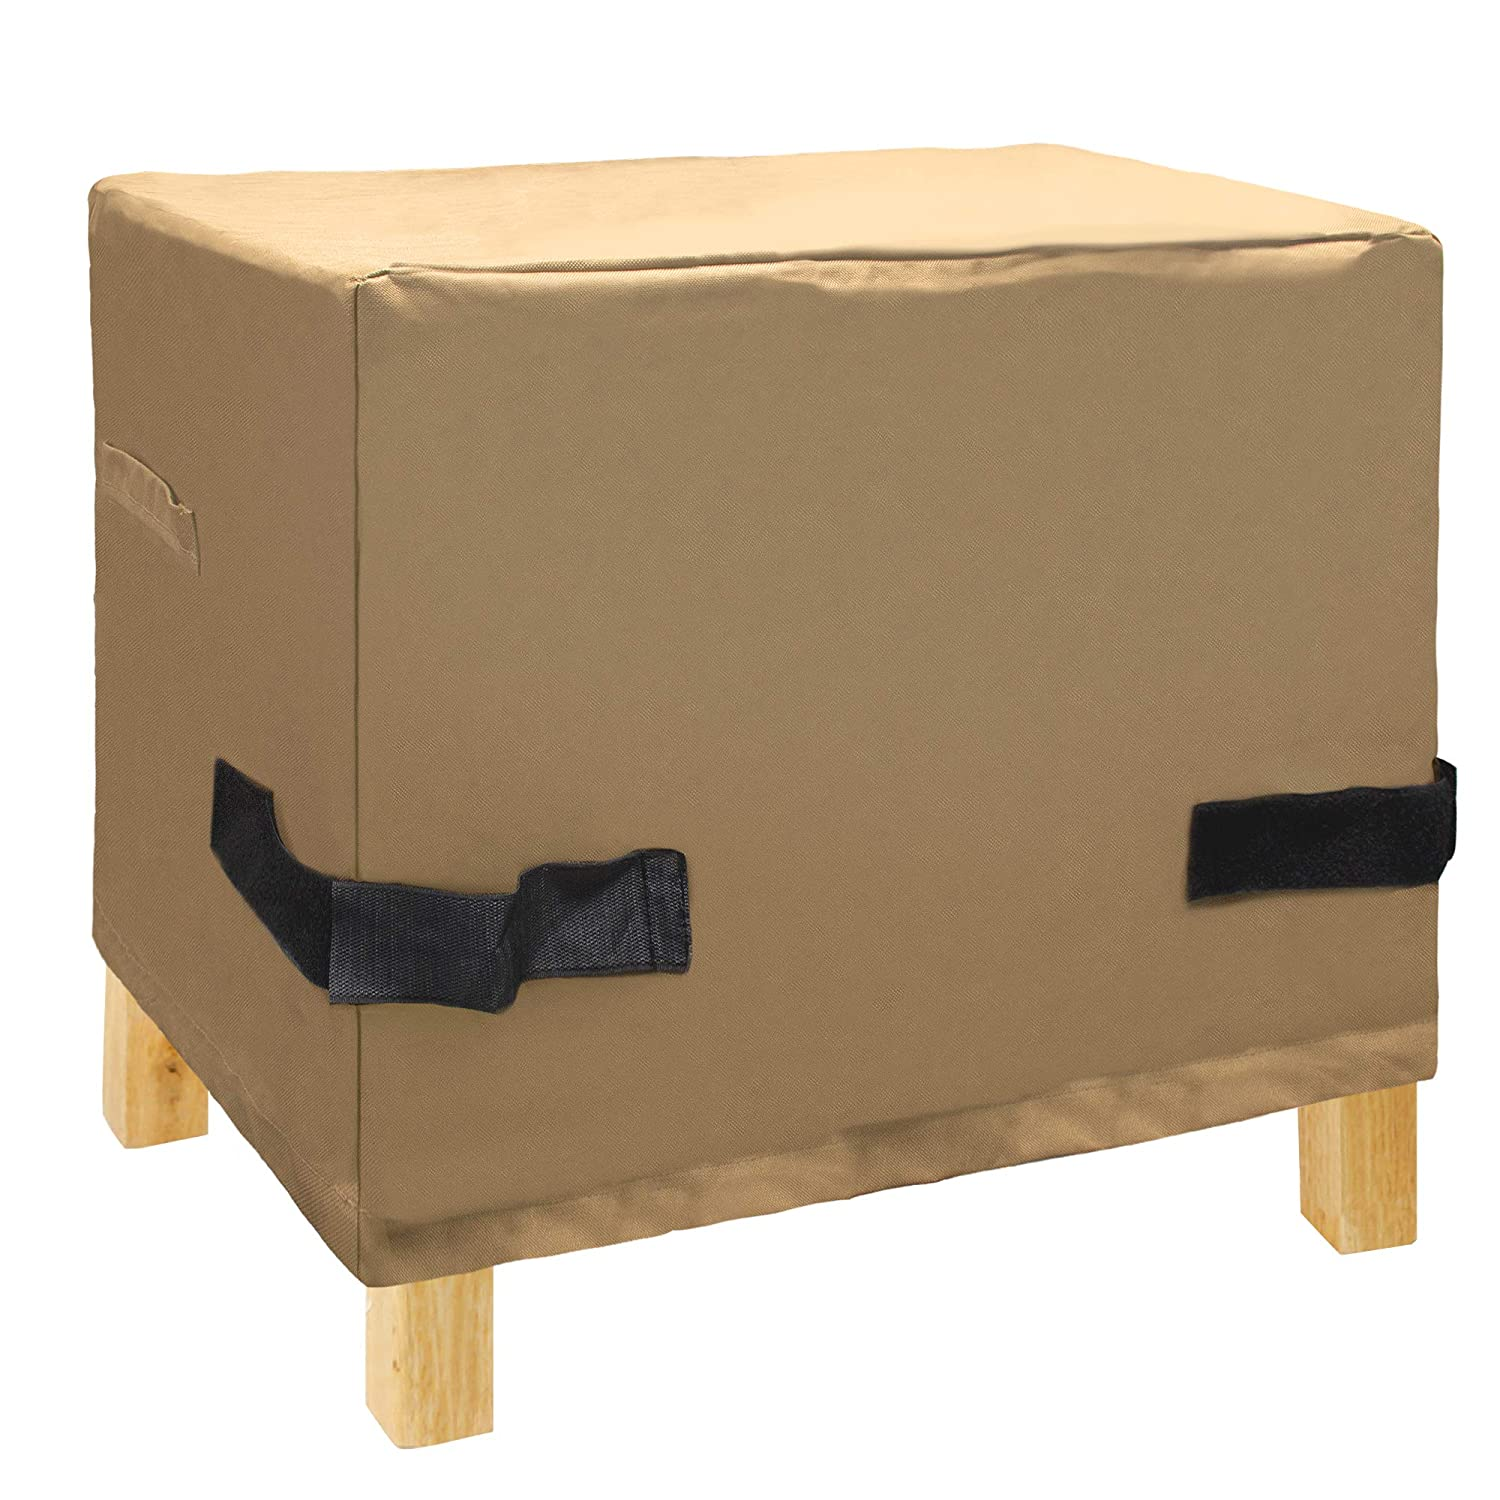 NEXTCOVER Patio Ottoman Side Table cover-600D Canvas Heavy Duty Waterproof Fade Resistant, Tan Color,NP21825A.